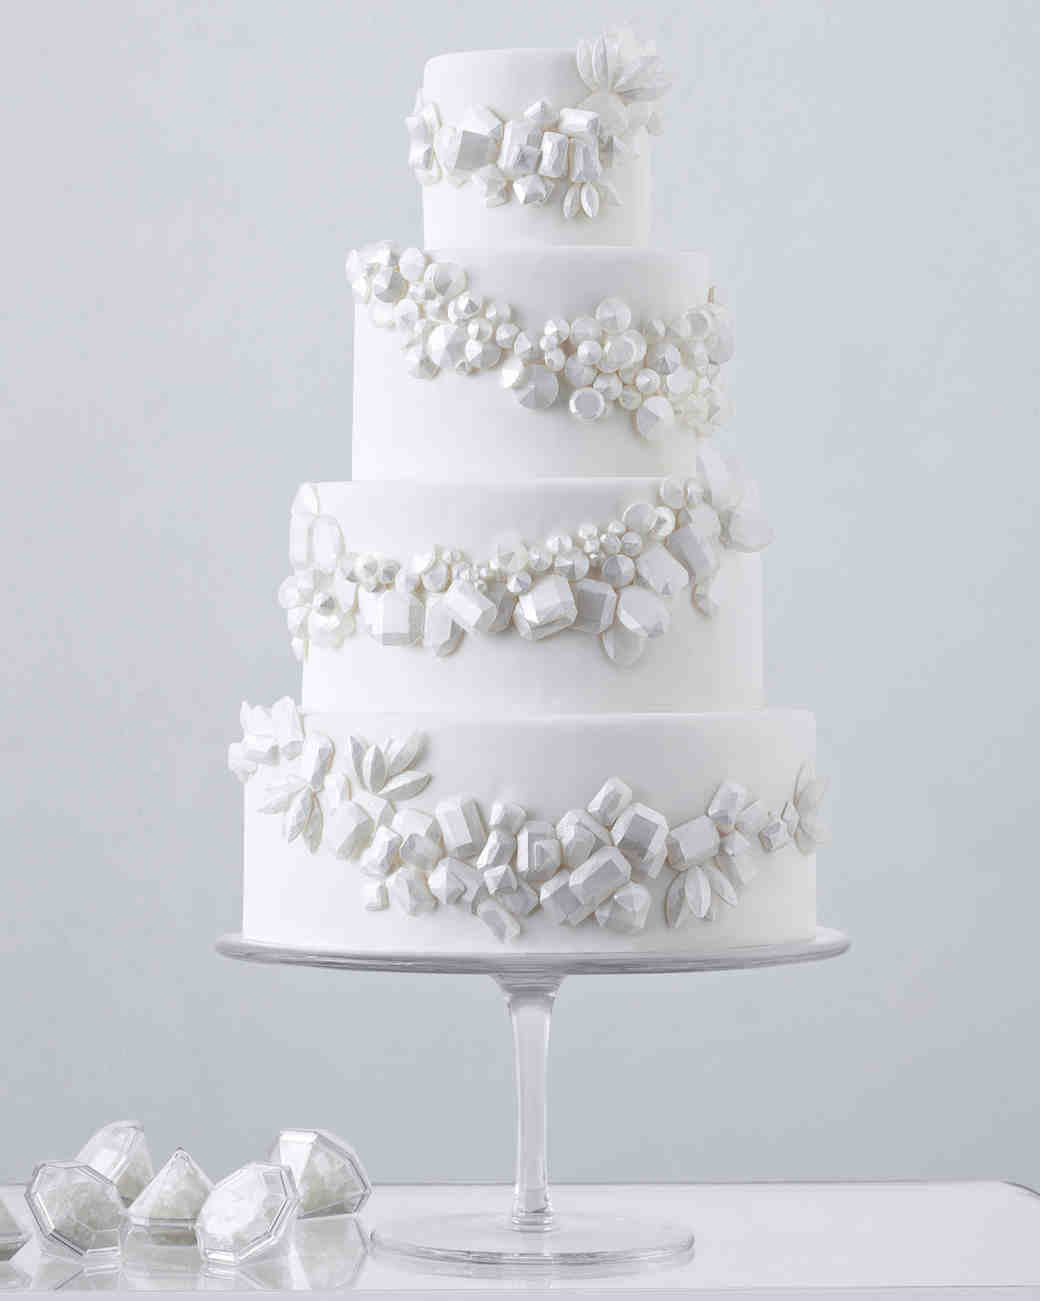 White On White Wedding Cake  104 White Wedding Cakes That Make the Case for Going